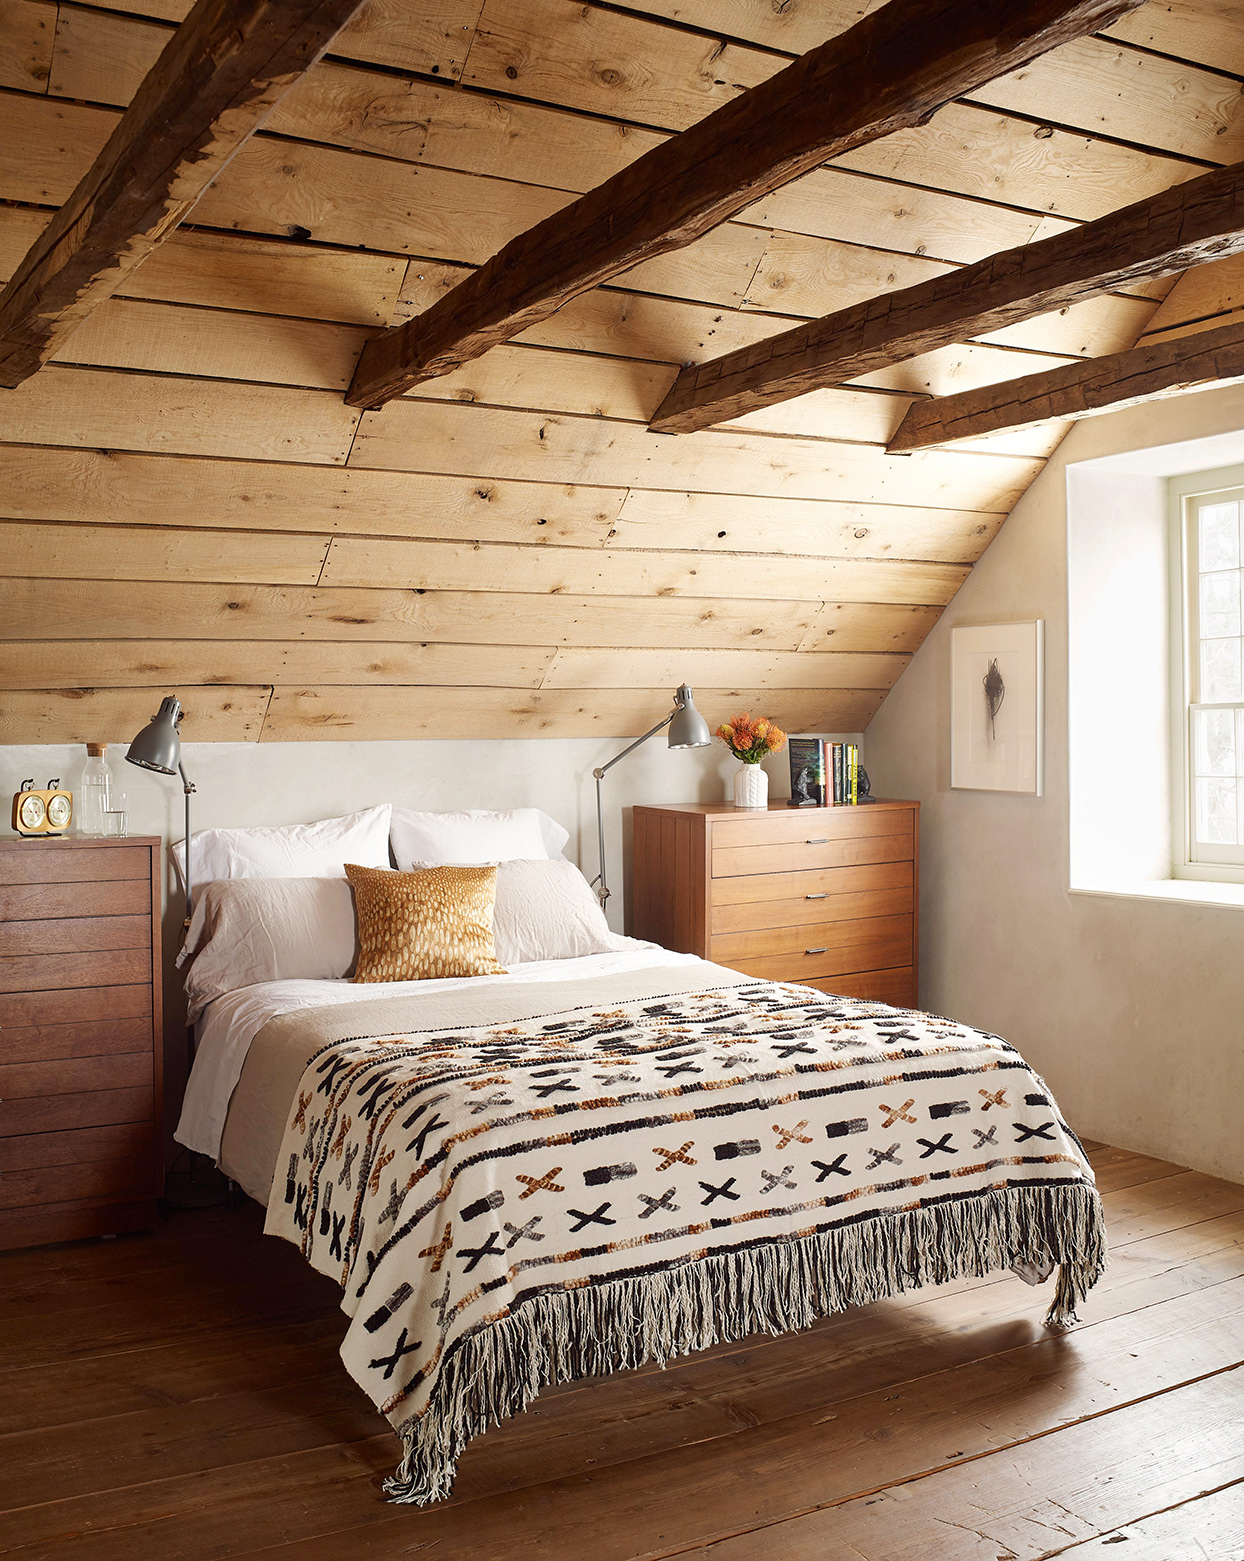 attic bedroom with wooden ceiling